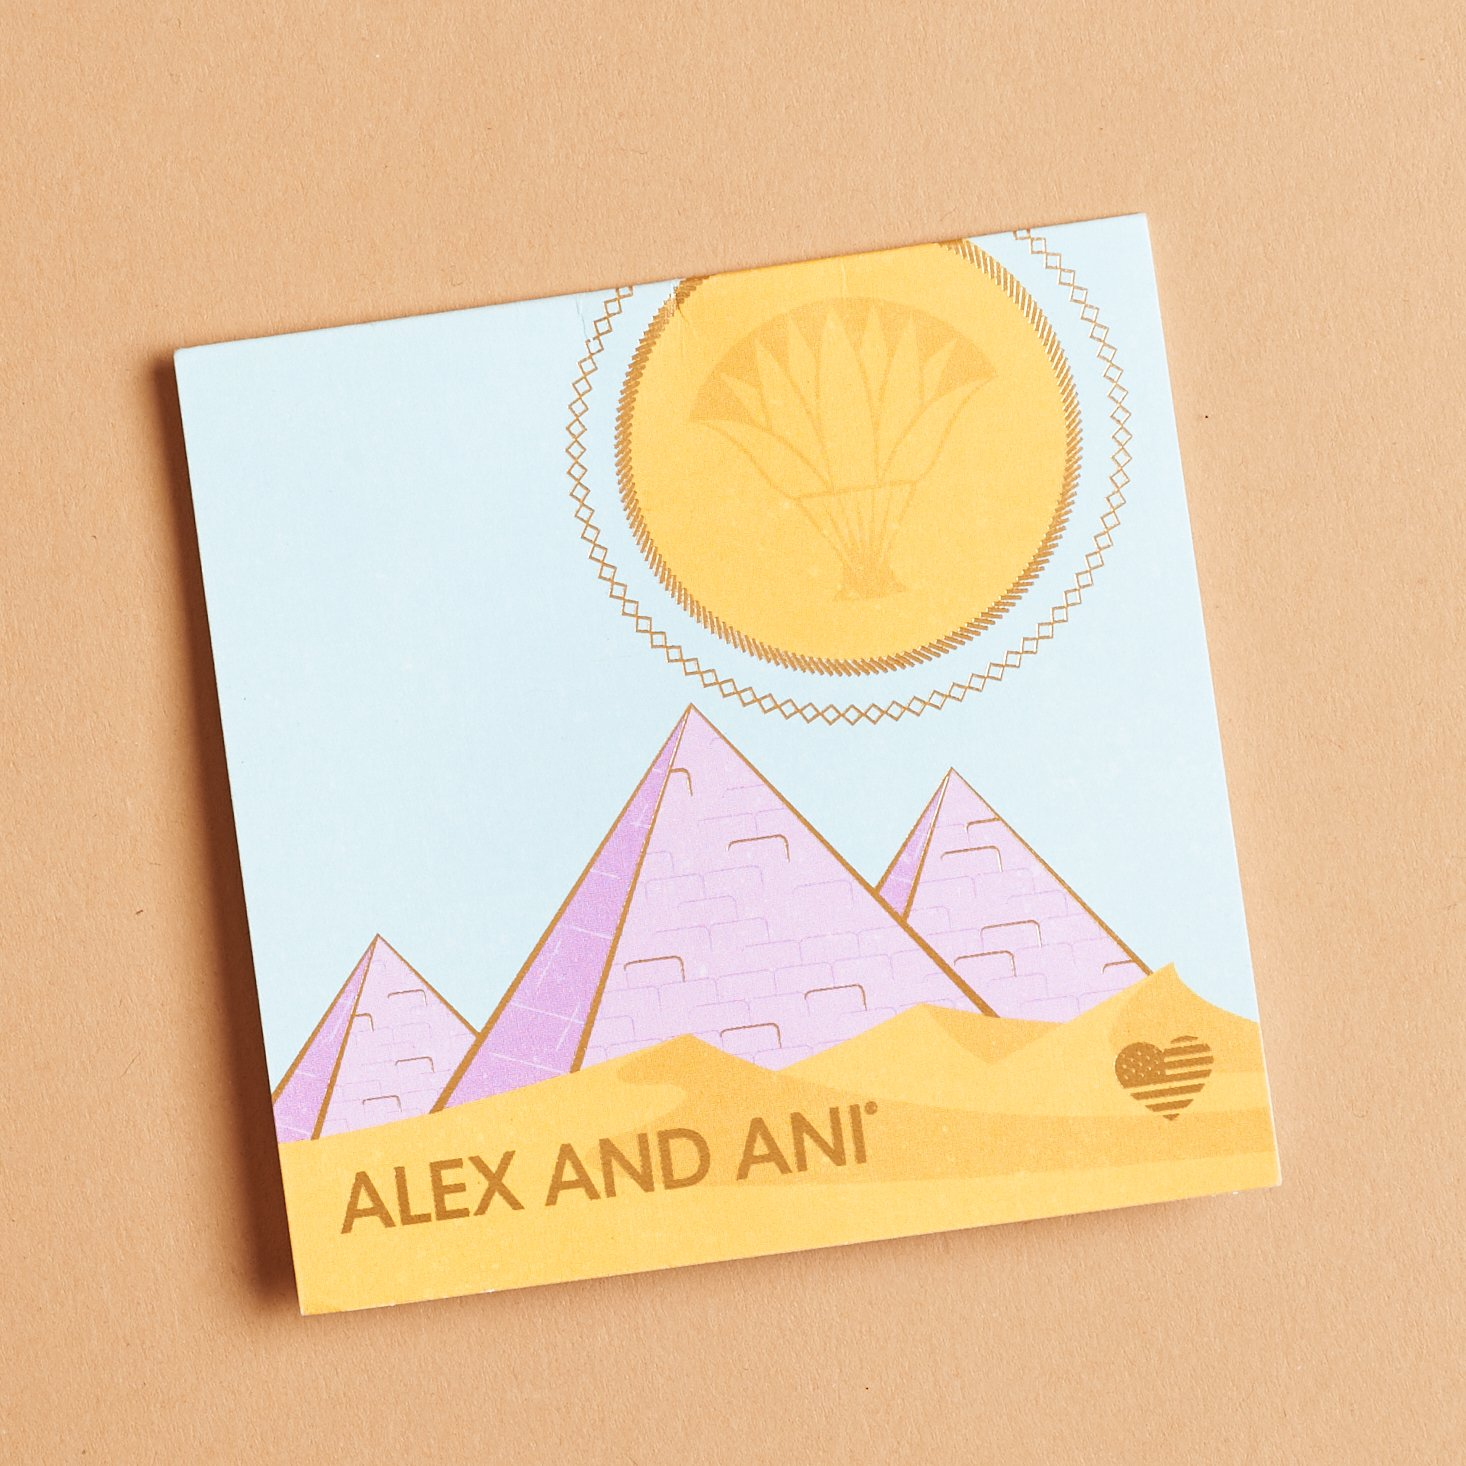 alex and ani info card